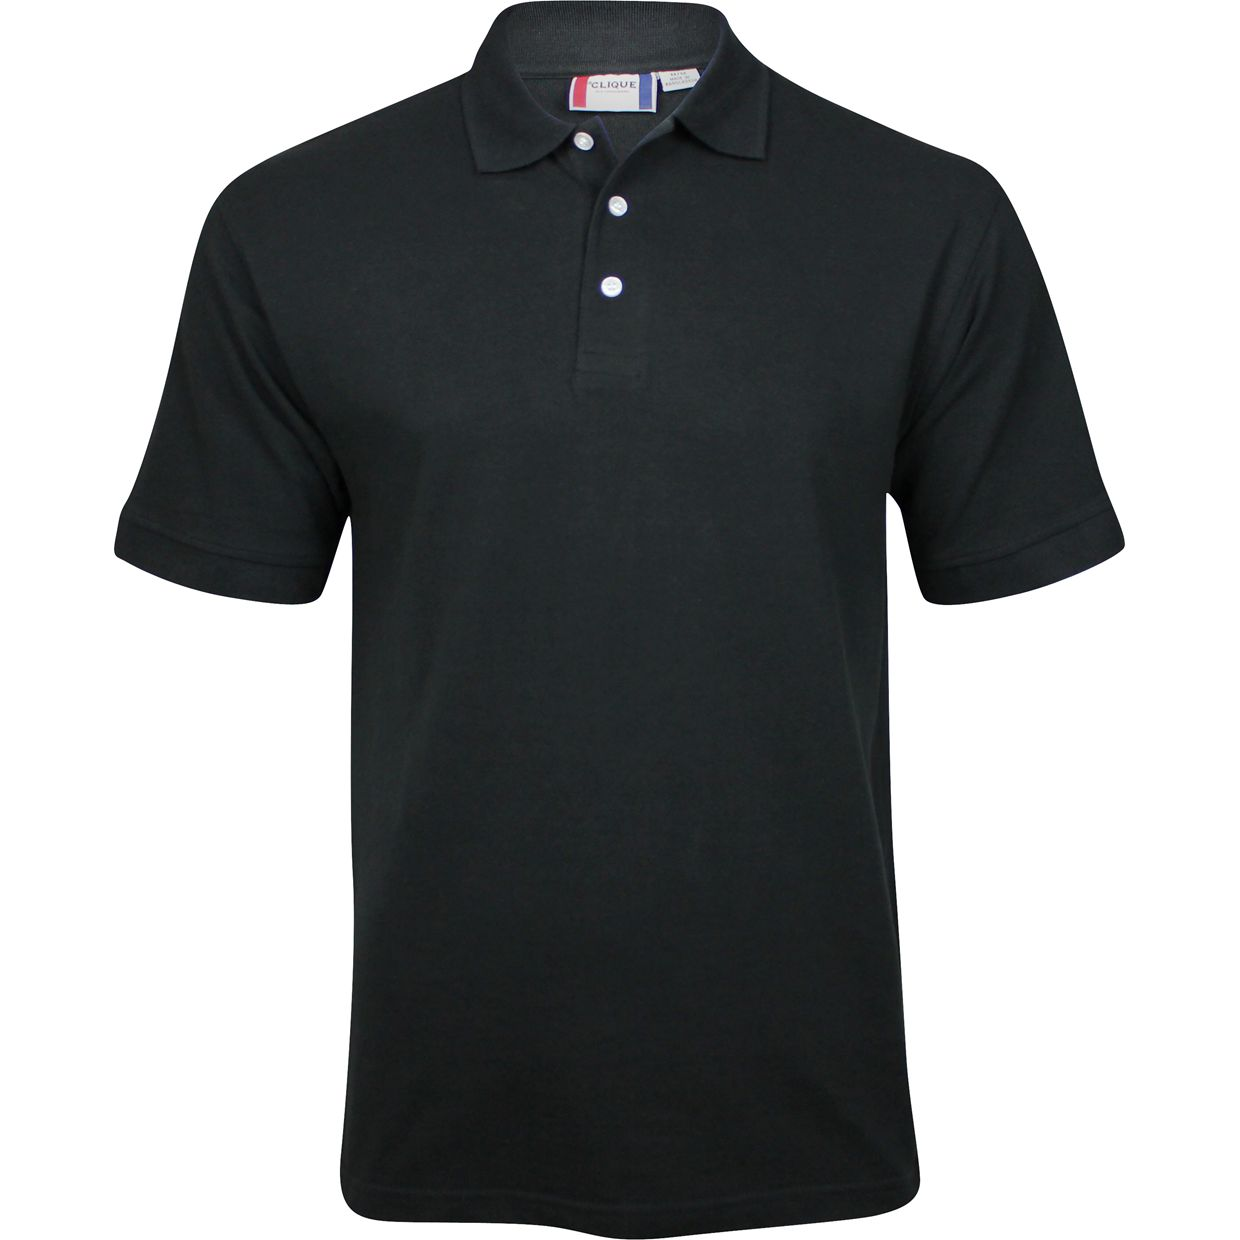 Clique by cutter buck lincoln shirt apparel m black at for Cutter buck polo shirt size chart